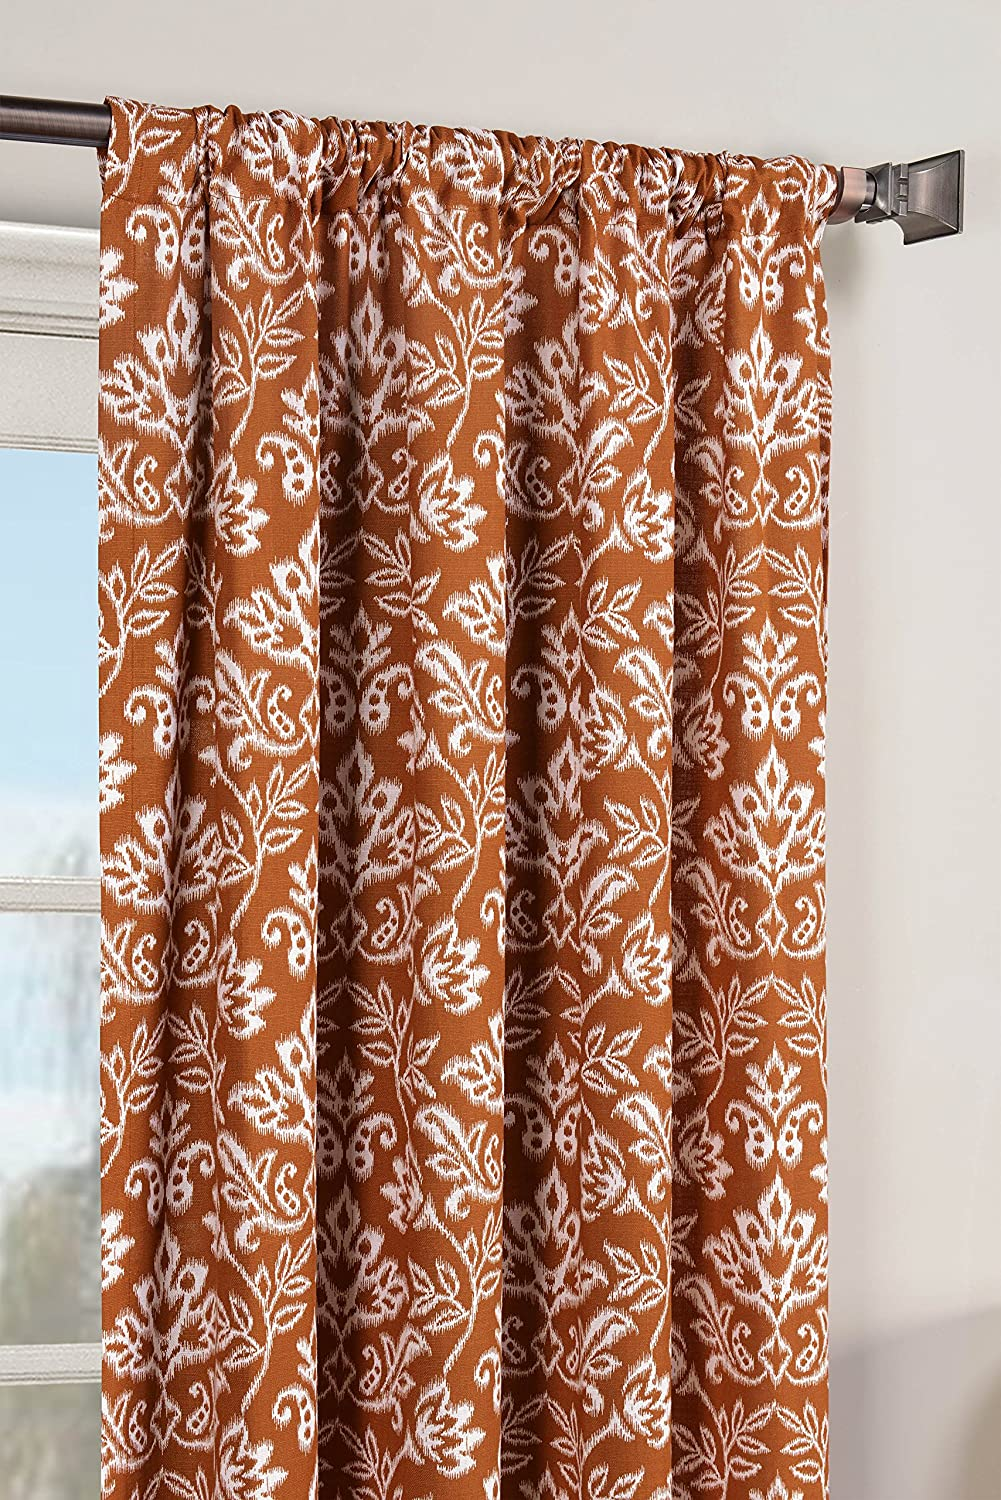 Window Elements Valencia Printed Cotton Rod Pocket Curtain Panel Pair, Rust